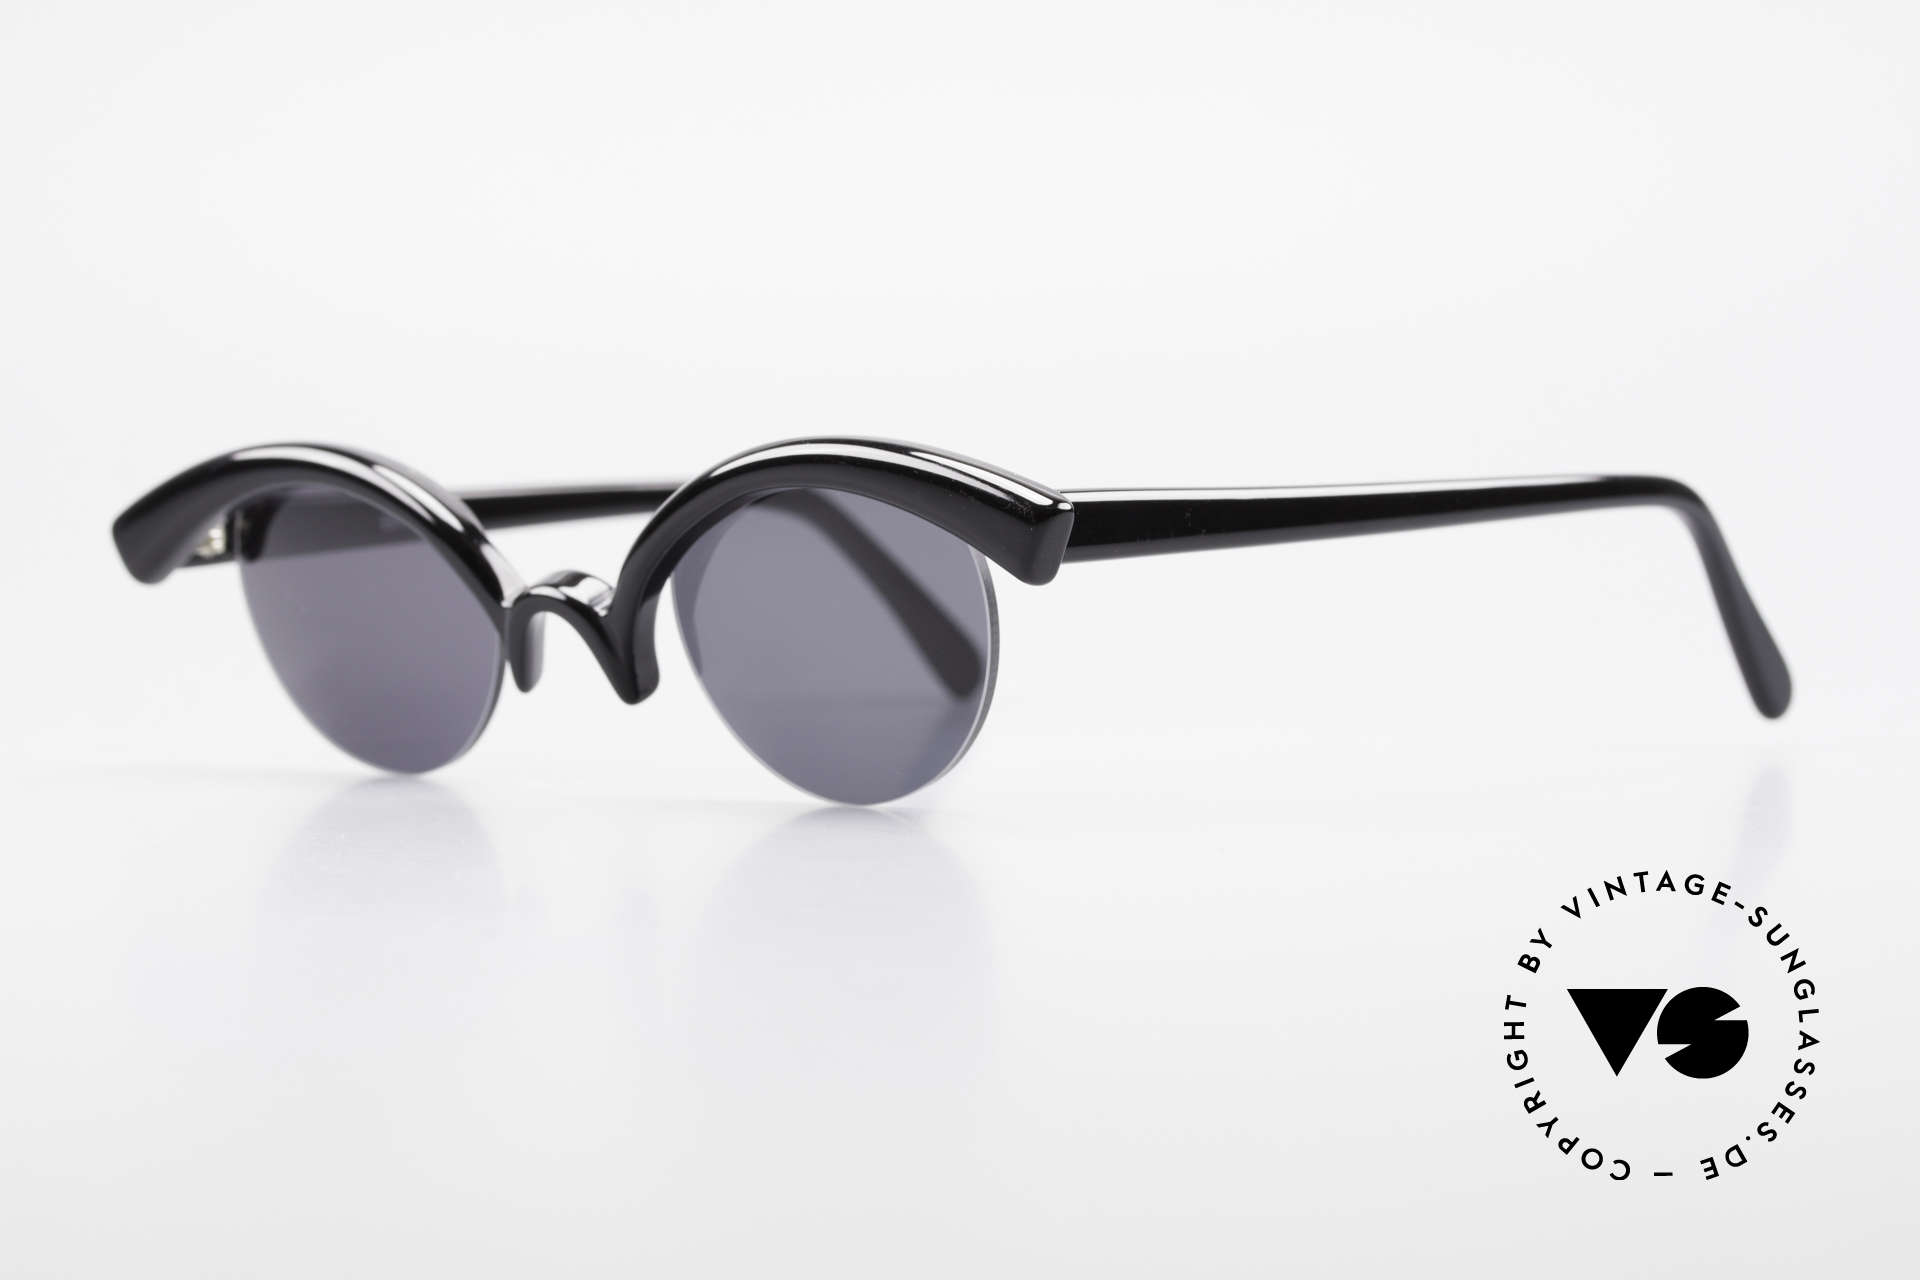 Design Maske Berlin - Ethno Artful Vintage Sunglasses 90s, functional and EYE-CATCHING, at the same time, Made for Women